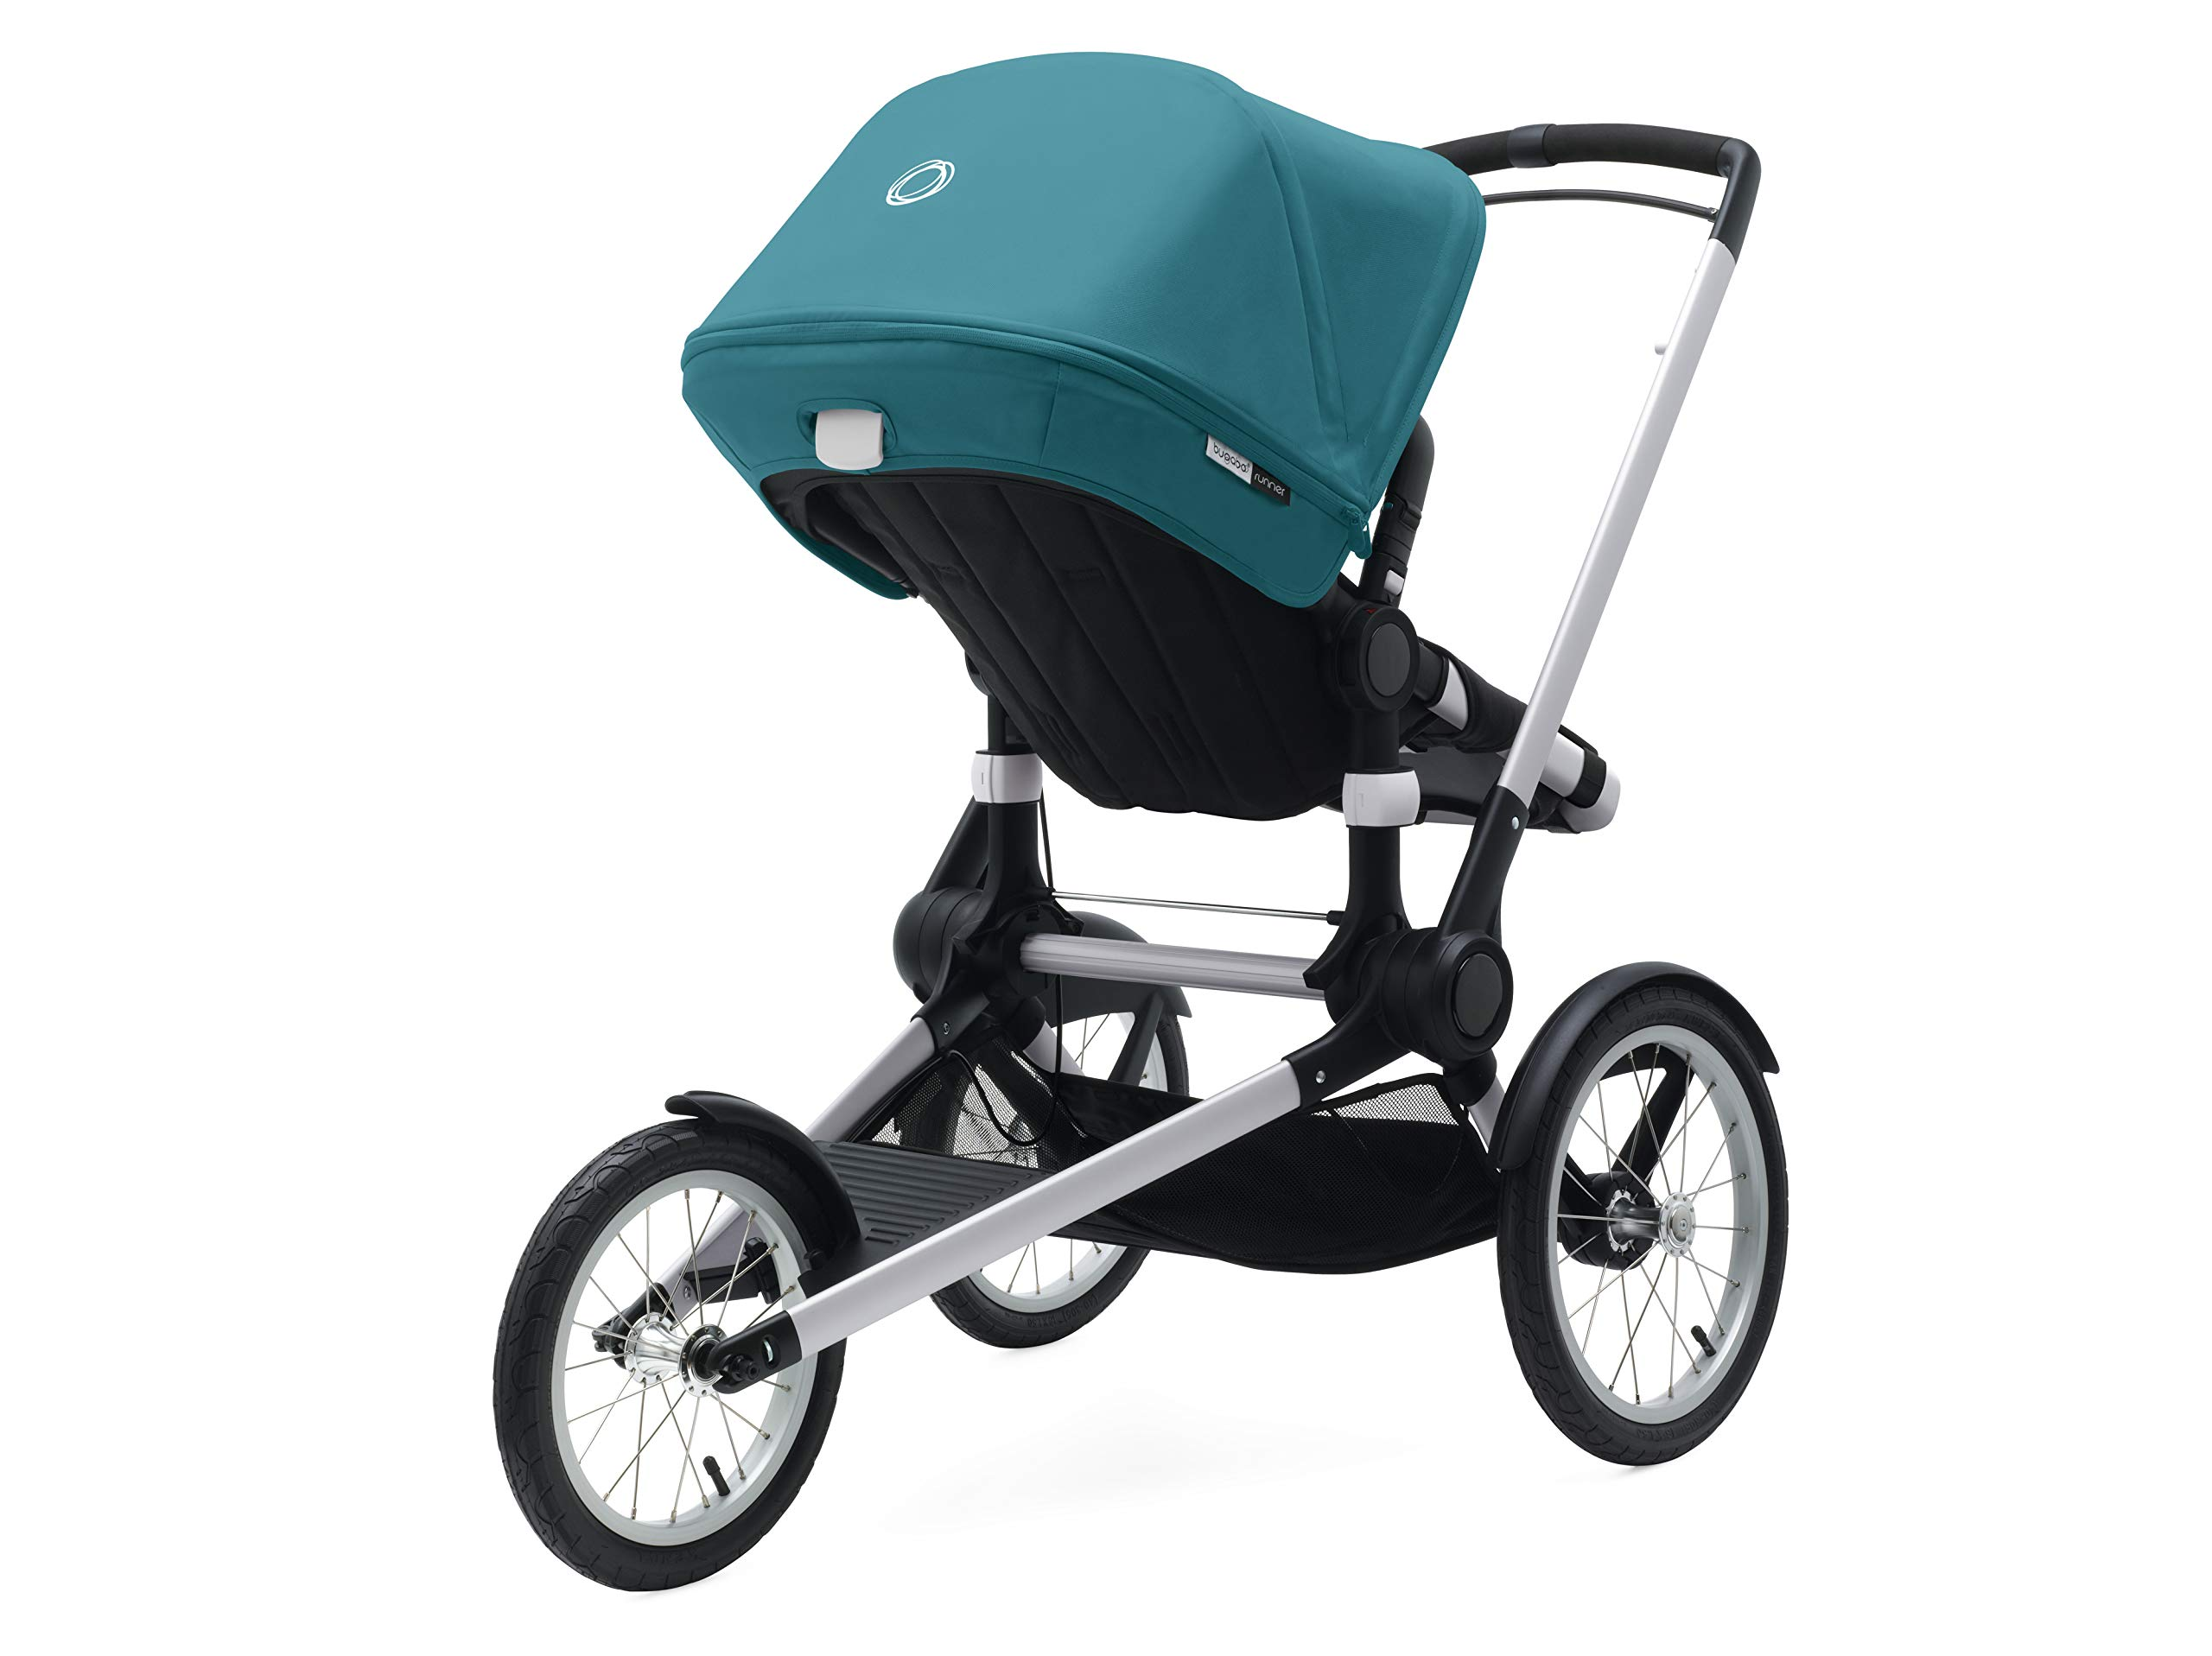 Bugaboo Runner Complete Pushchair, Black/Petrol Blue Bugaboo  4